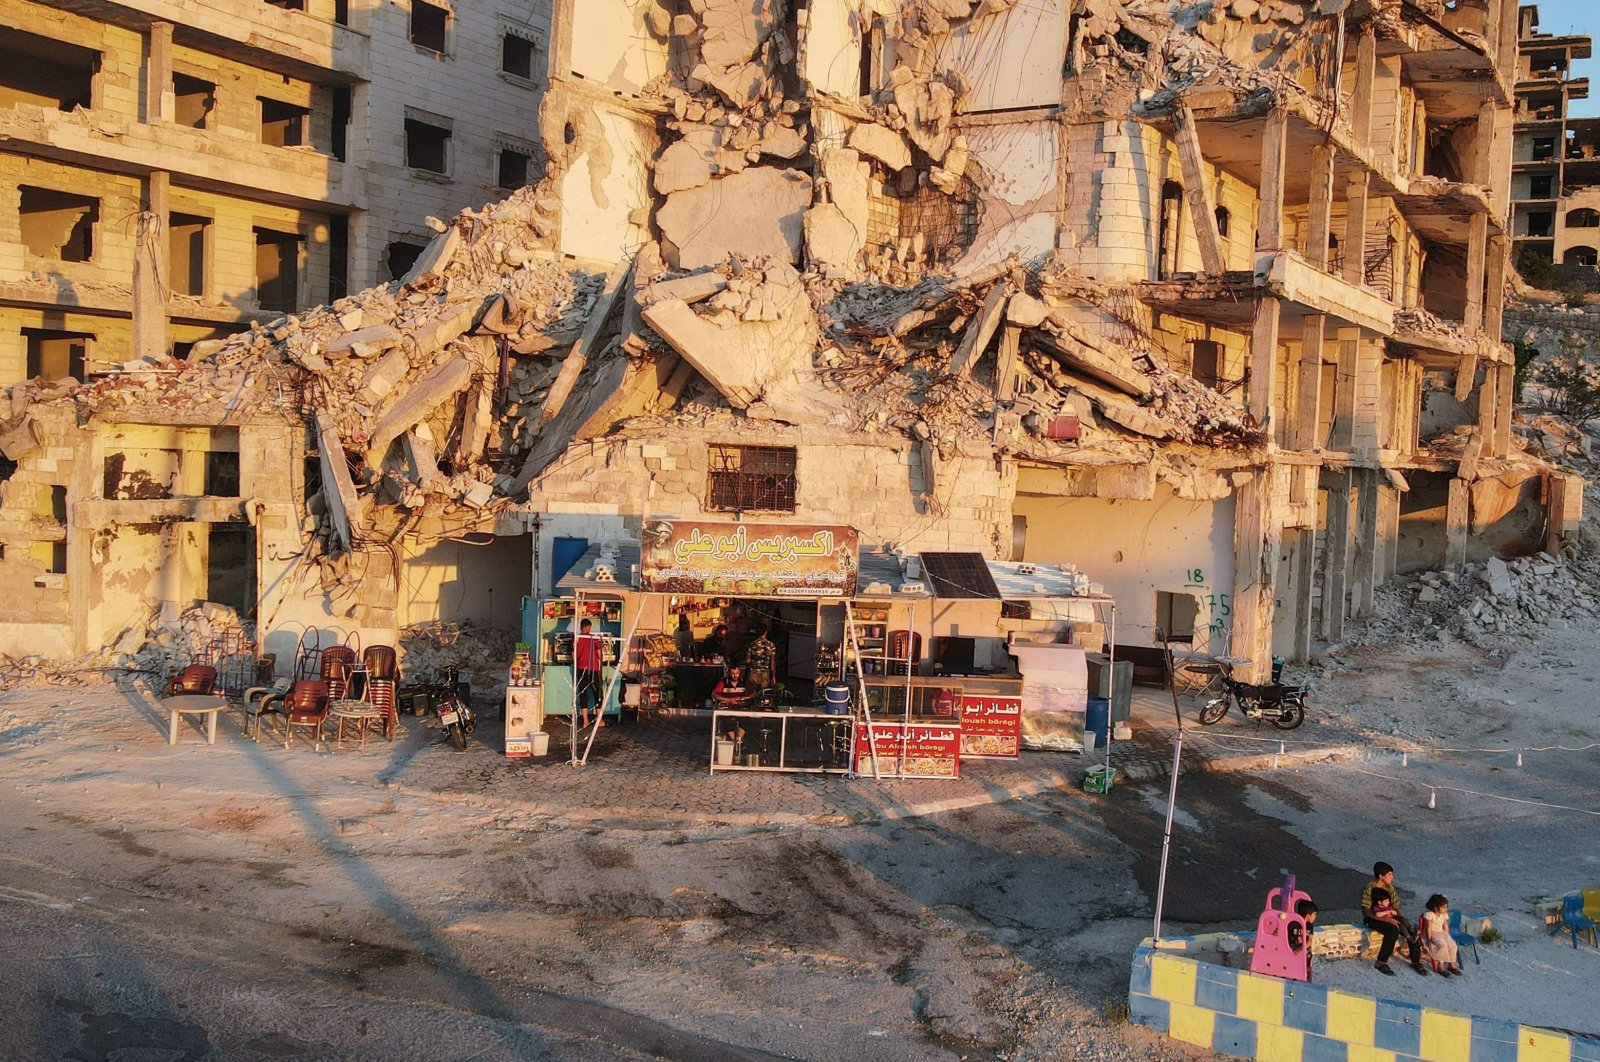 Children gather in the playground in front of Abu Ali's cafe, set up on the ground floor of a building heavily damaged during the civil war, in the Jabal al-Arbain hiltop residential area, in the Syrian town of Ariha in the opposition-held northwestern Syrian Idlib province, July 11, 2021. (AFP Photo)